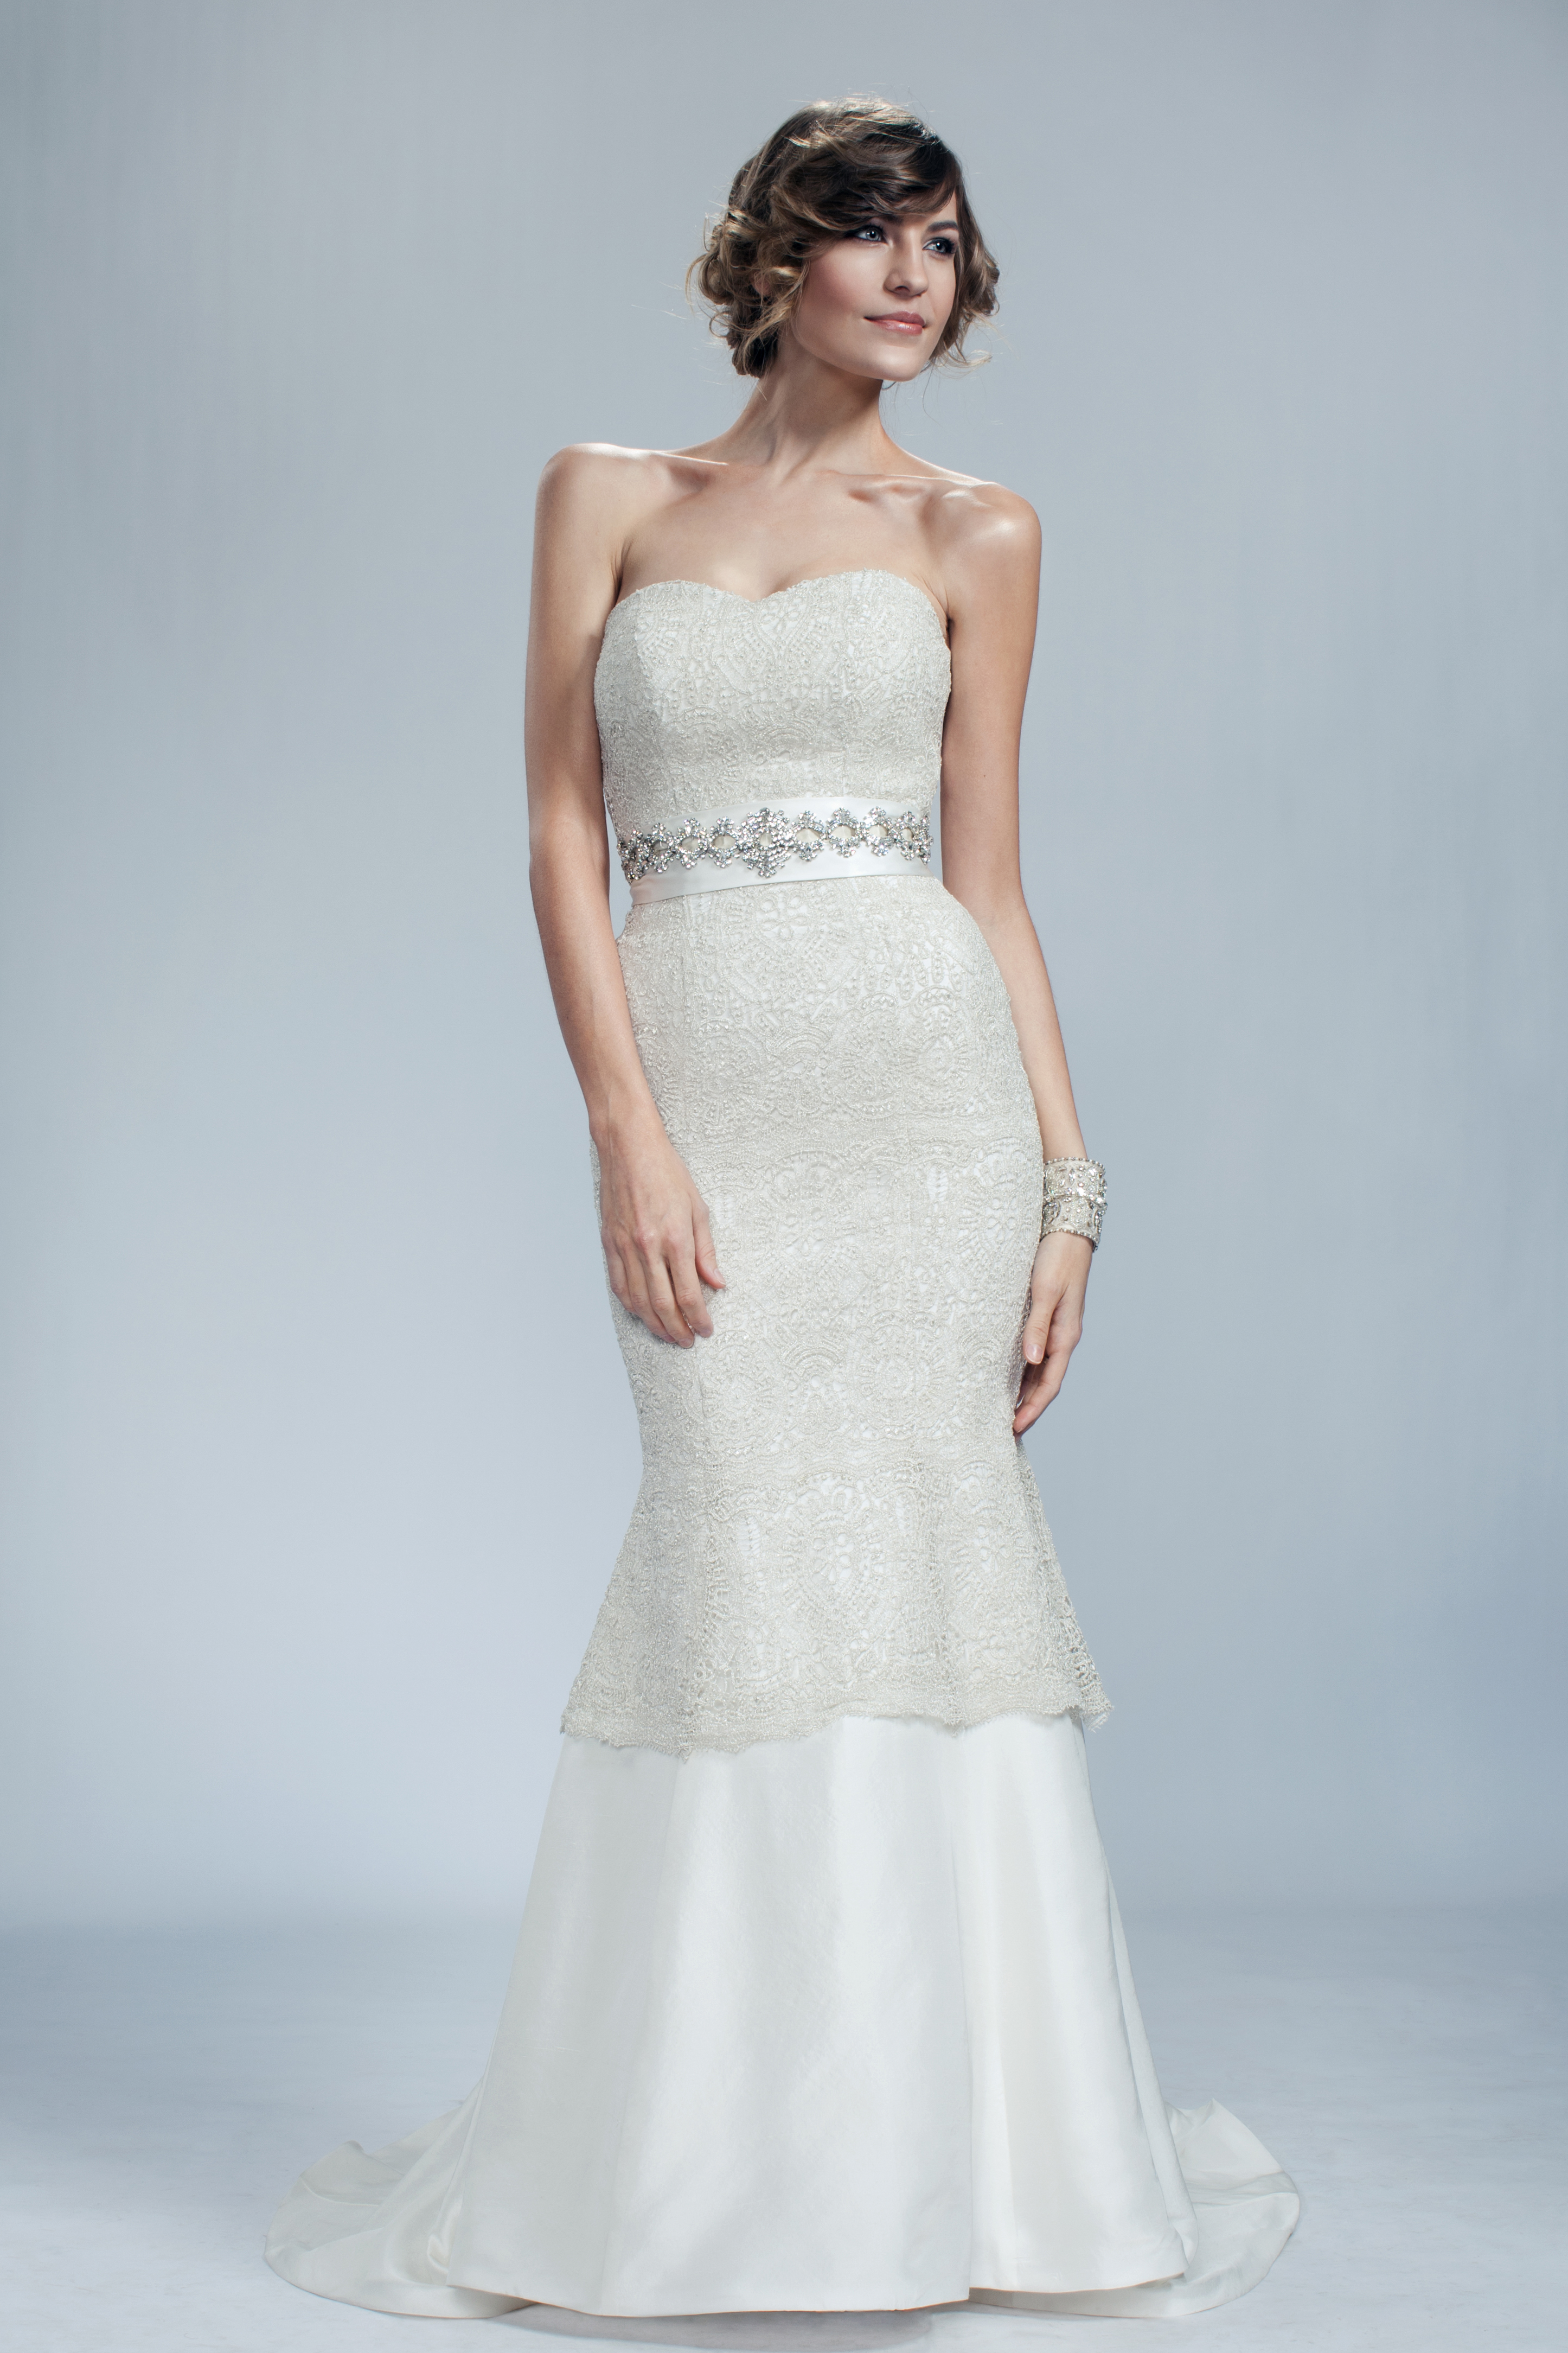 Timeless Luxury is a silk shantung silver luxury lace gown